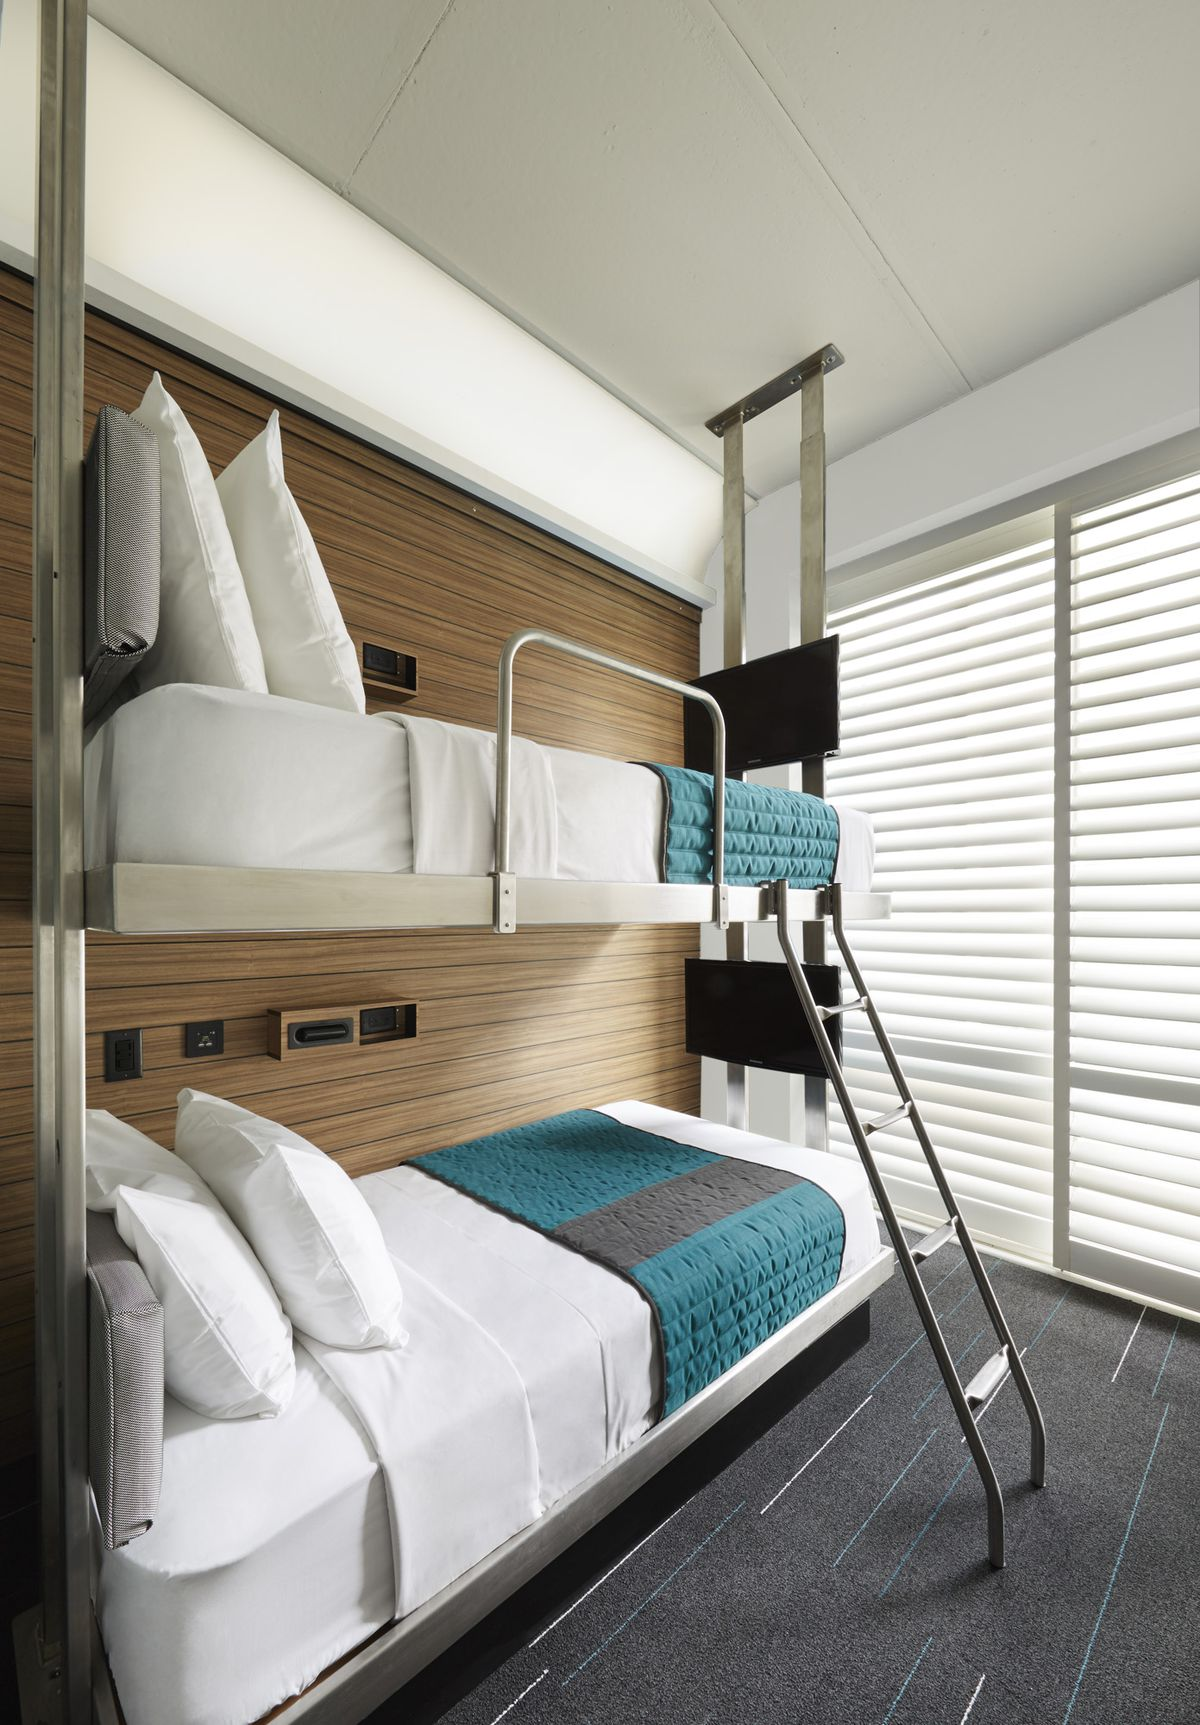 Twin Bed Hotel Room: Pod Hotels's New Times Square Flagship Comes With 45